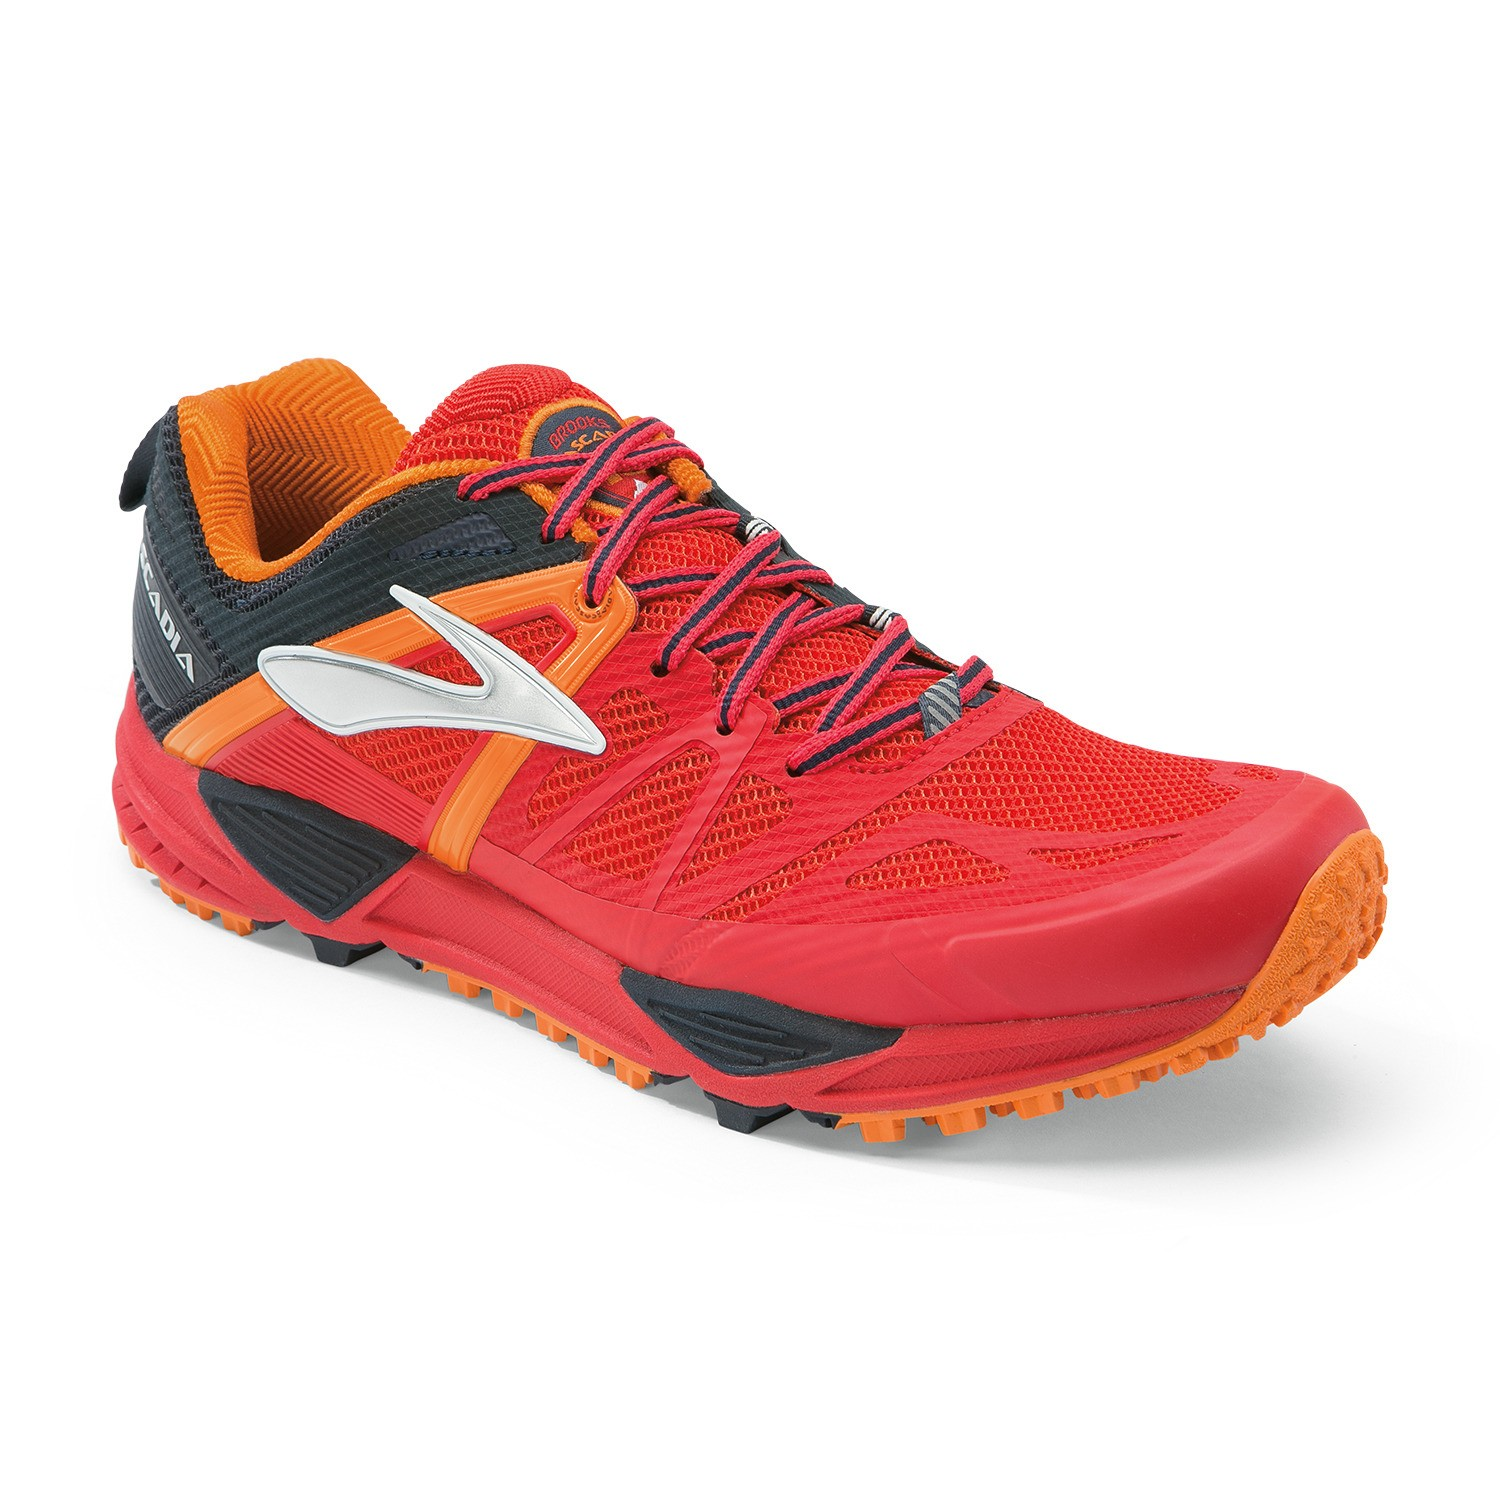 Mens Cascadia 10 Trail Running Shoes